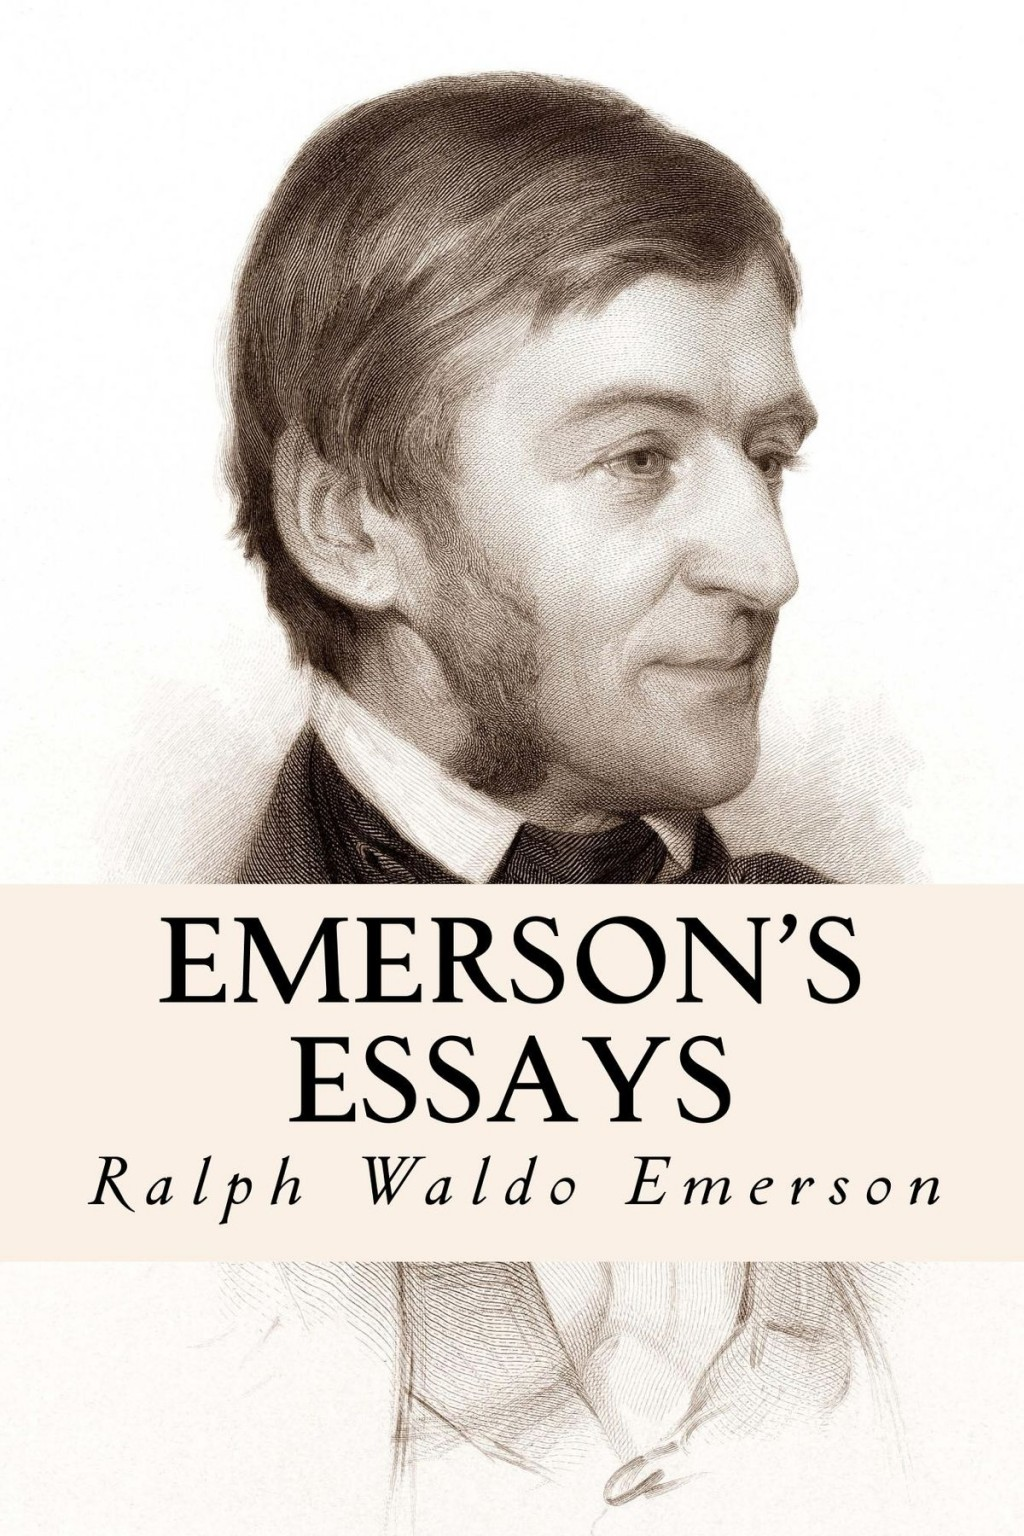 015 Emerson Essays S Essay Dreaded Self Reliance And Other Second Series Nature Large